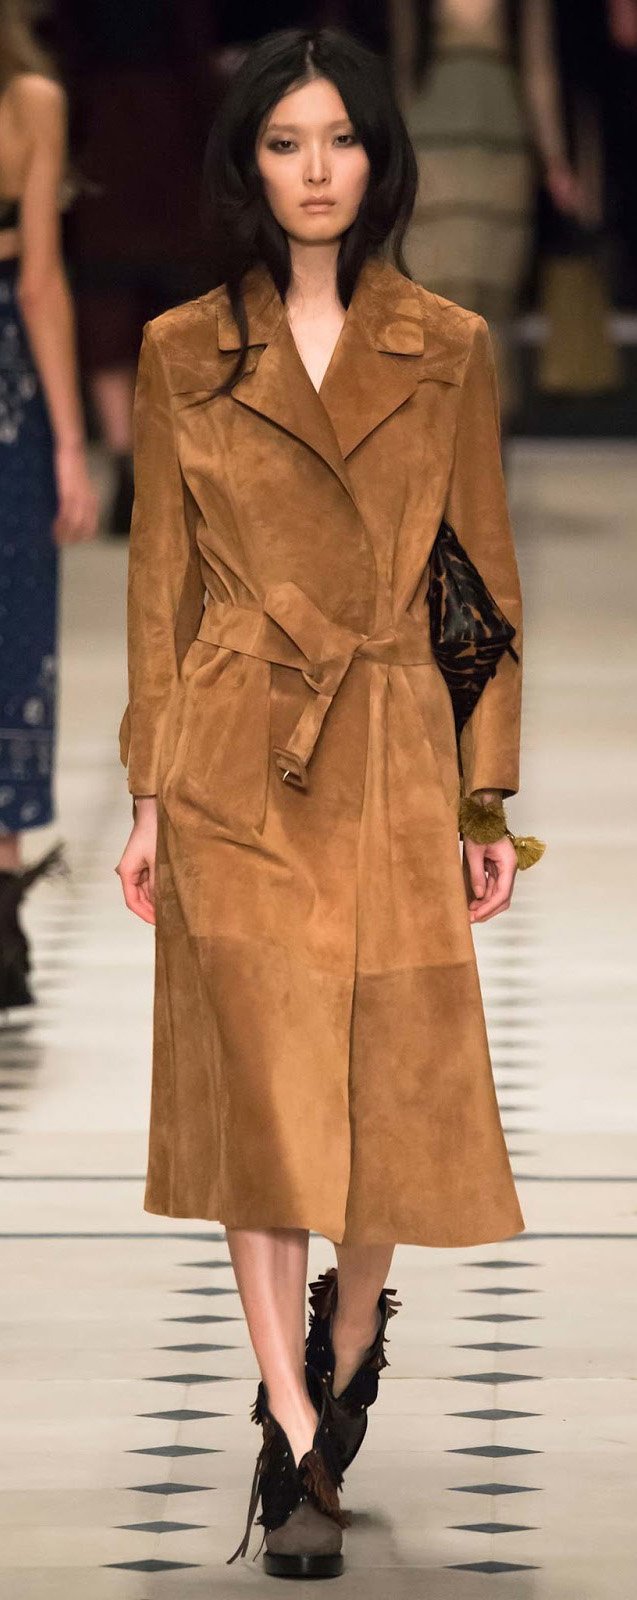 detail-classic-style-type-camel-suede-booties-trench-burberry-fall-2015.jpg